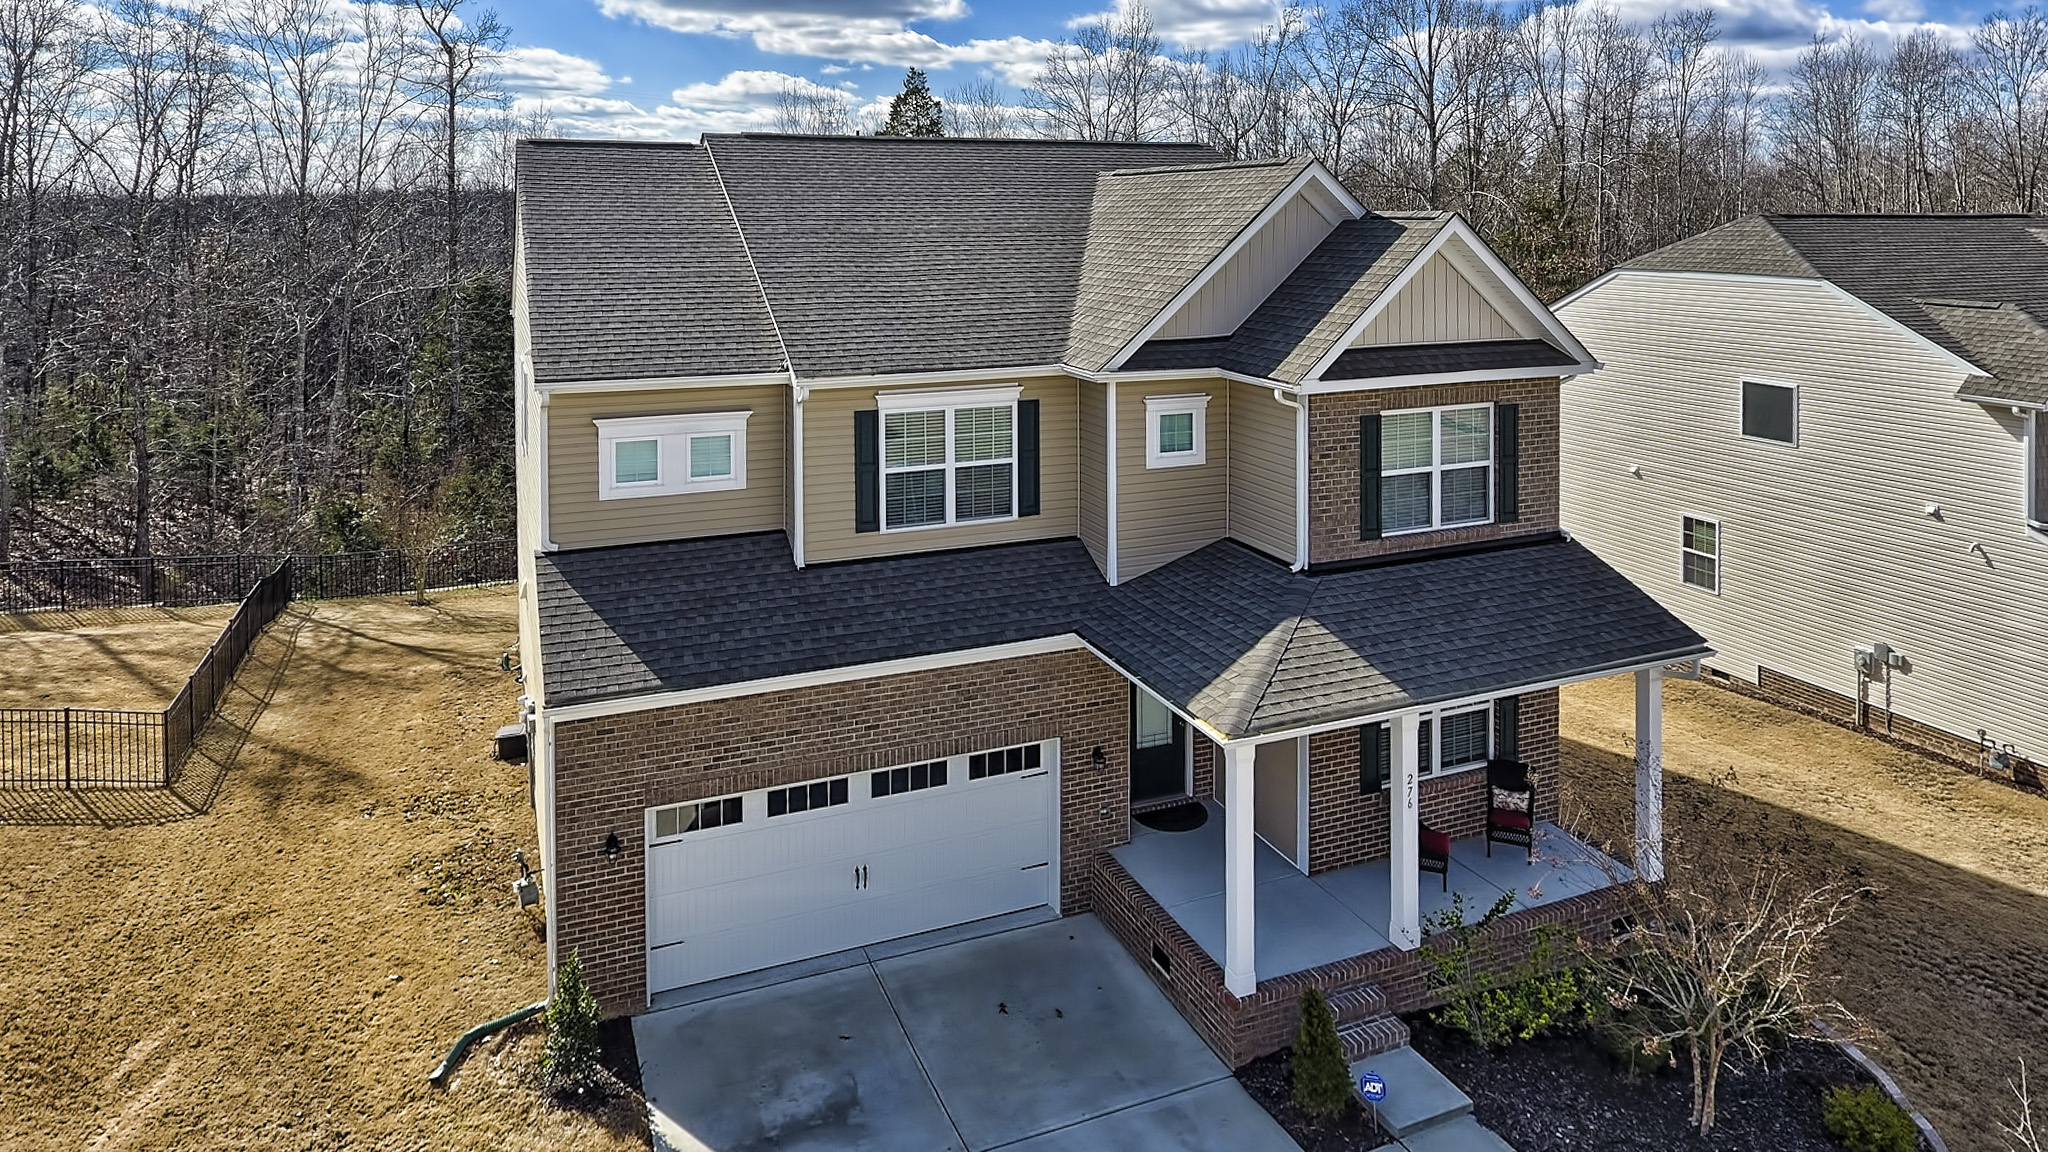 Rock Hill Homes For Sale Homes For Sale Rock Hill The